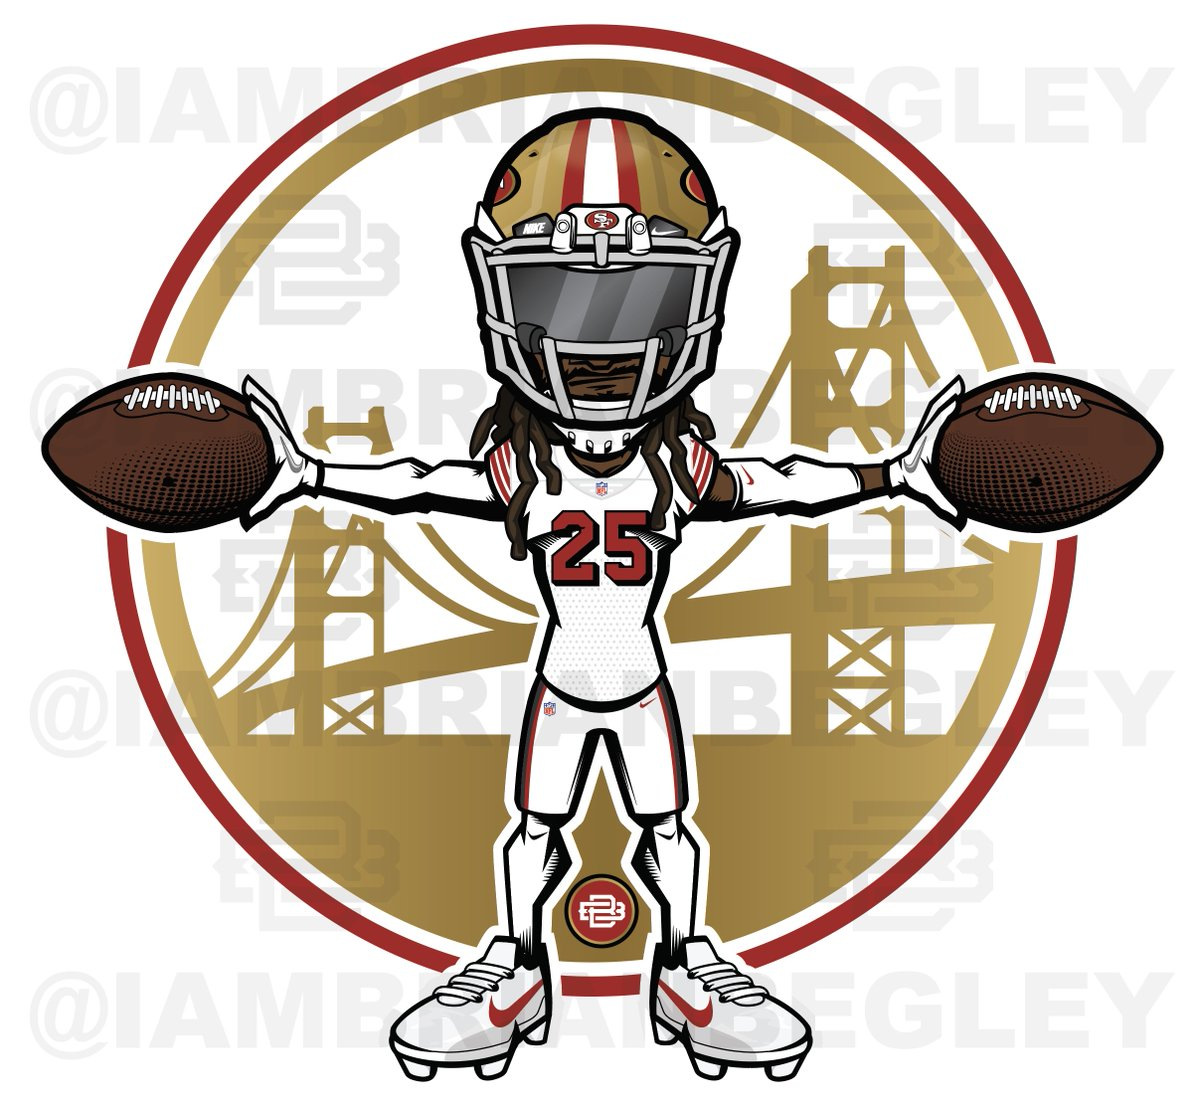 Brian Begley On Twitter New At 49ers Colorrush Uniform Cartoon For